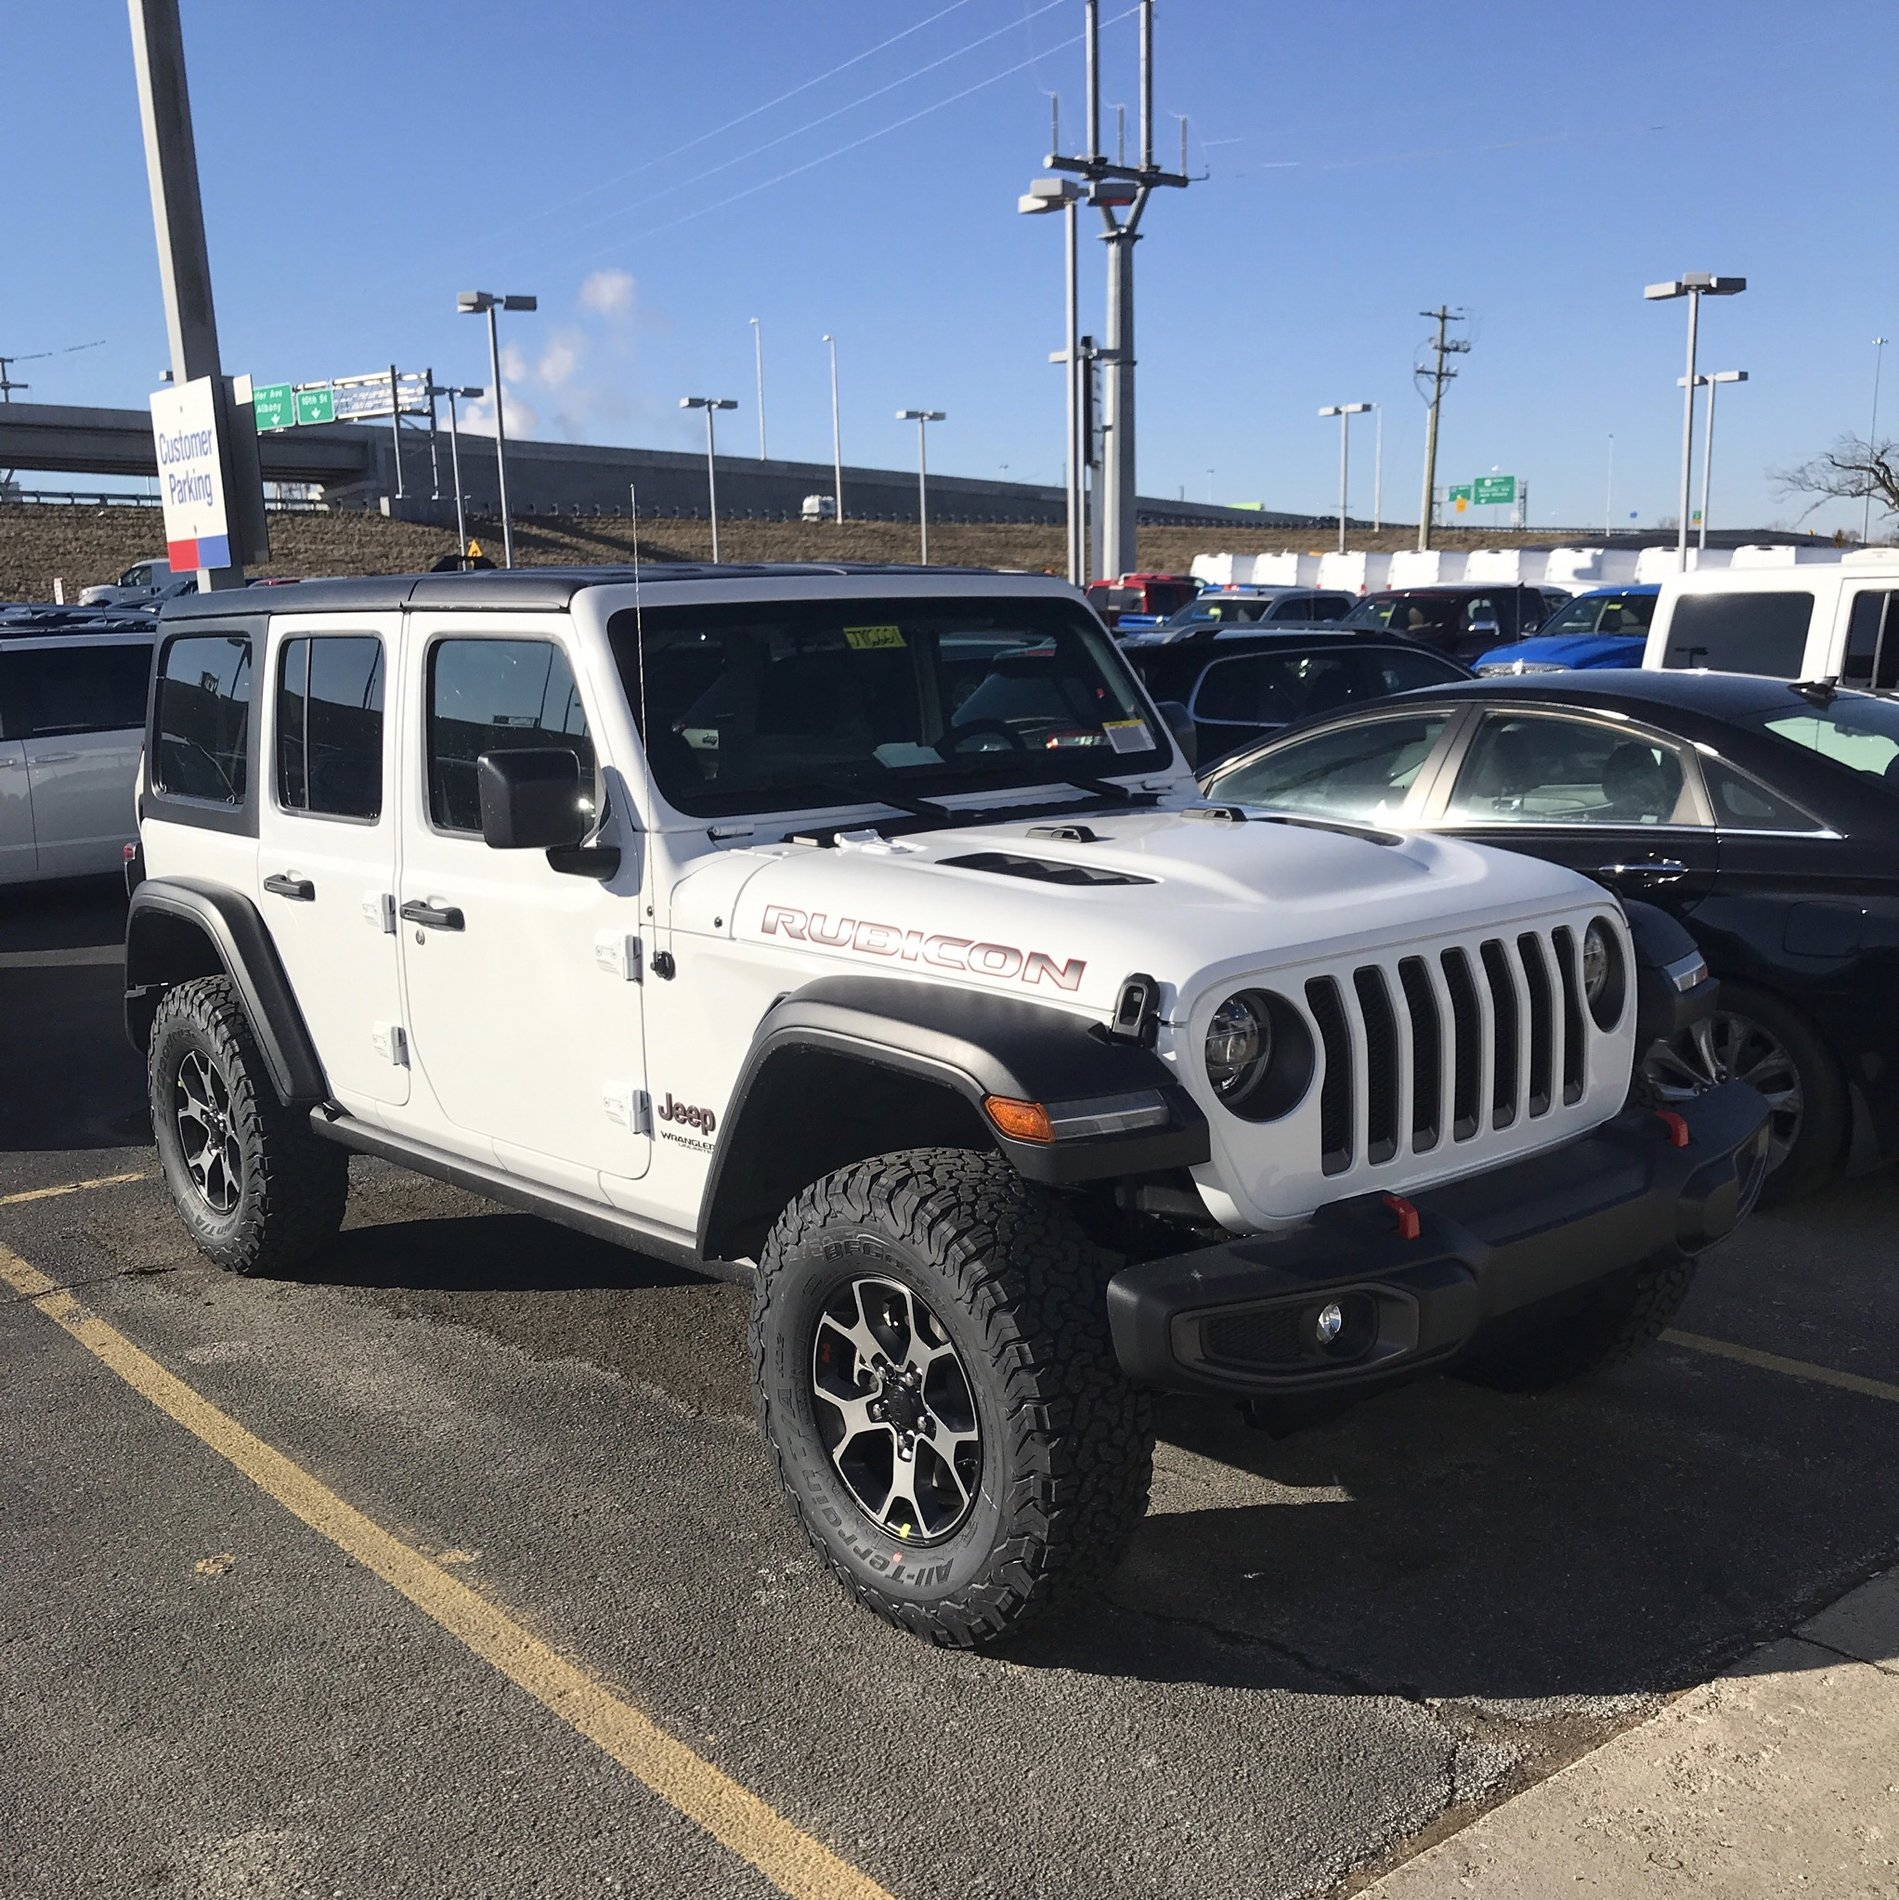 Show Off Your Delivered JL Here!